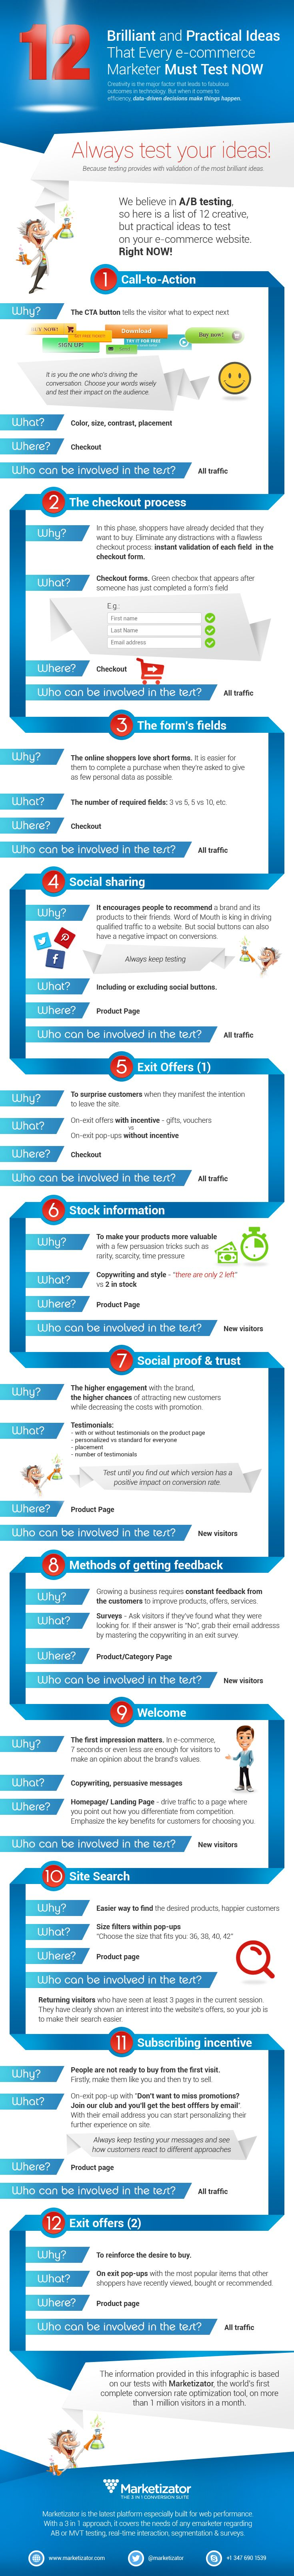 12 Jaw Dropping Ideas to Test on E commerce Websites #infographic